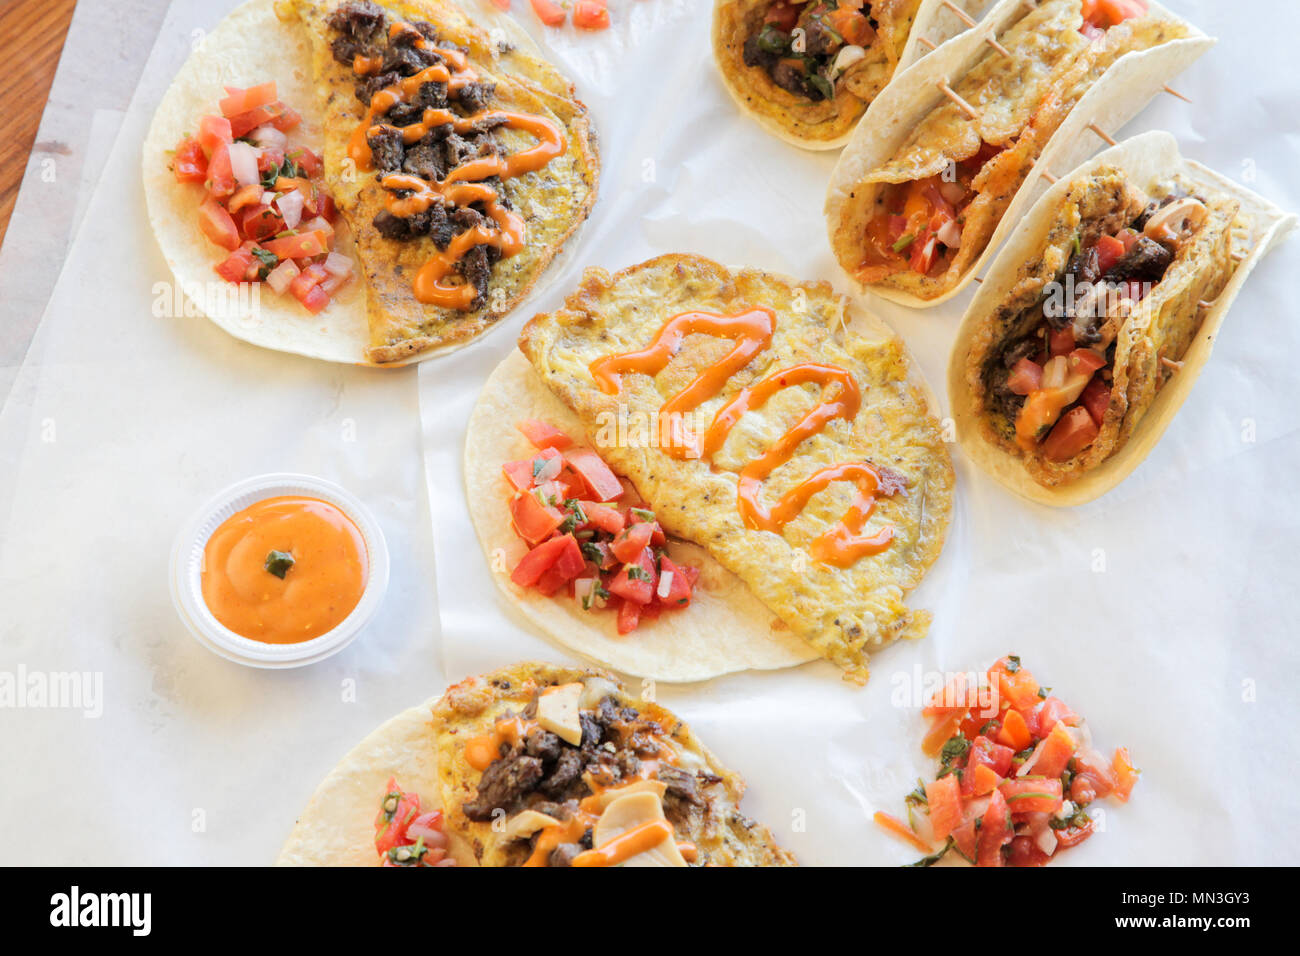 Tortilla breakfast wraps and tacos Stock Photo